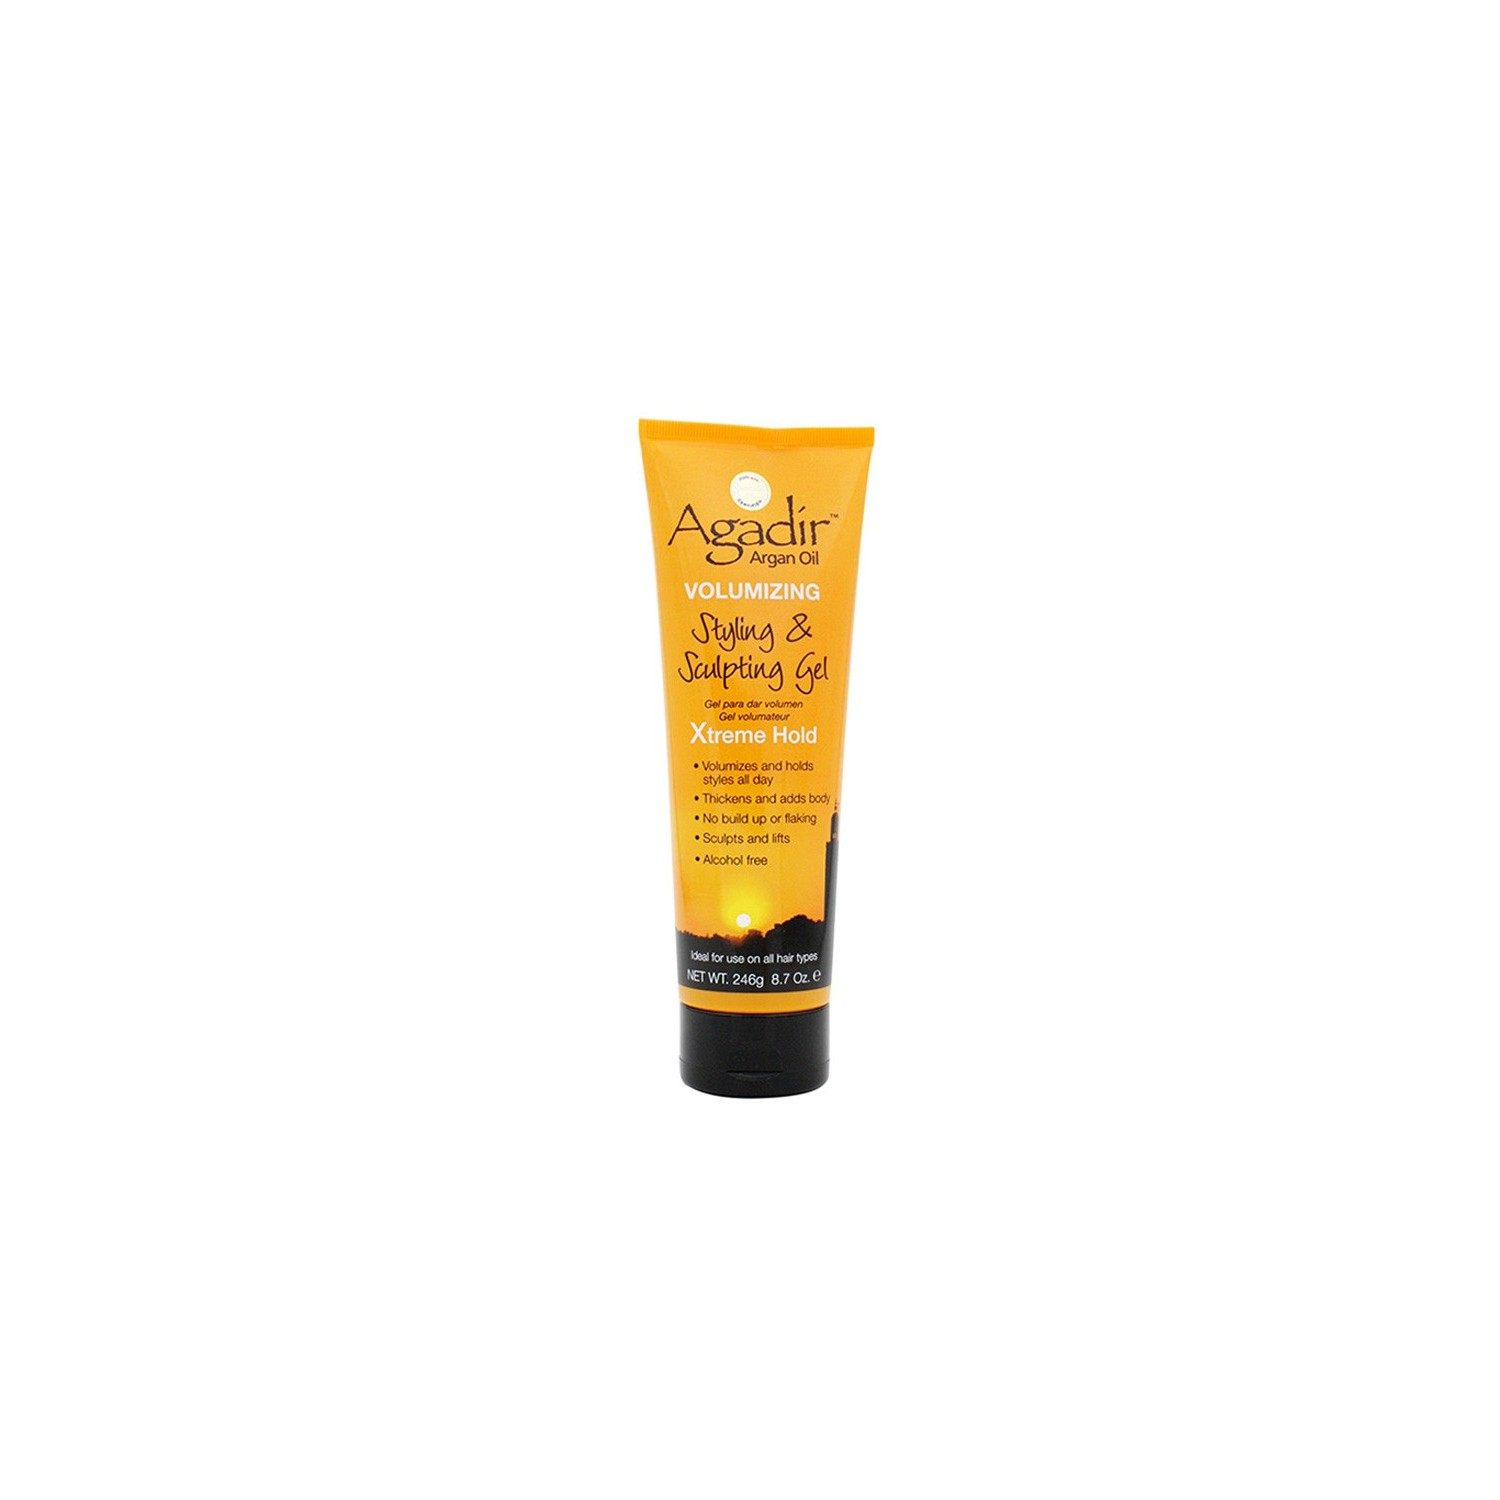 Agadir Argan Oil Styling & Sculpting Gel,257 Ml